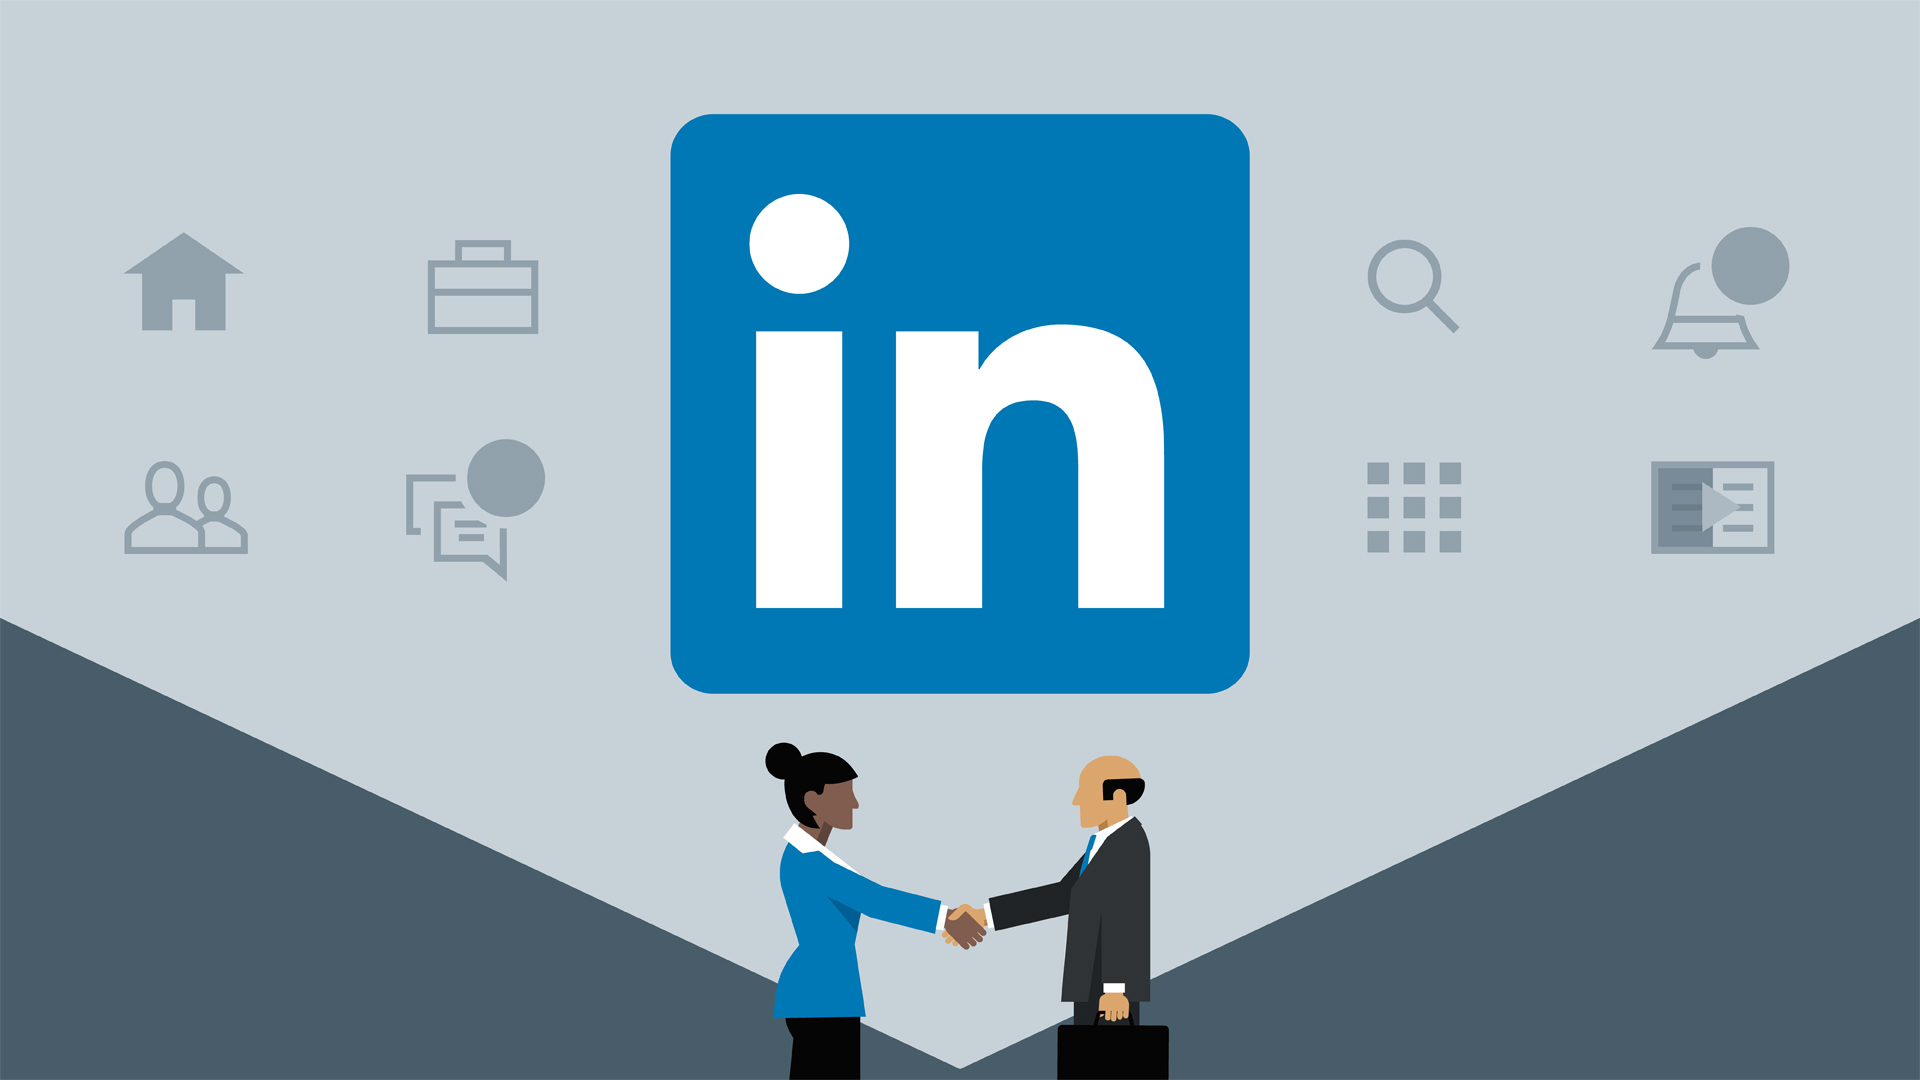 LinkedIn offers employers and job-hunters a place to interact with one another